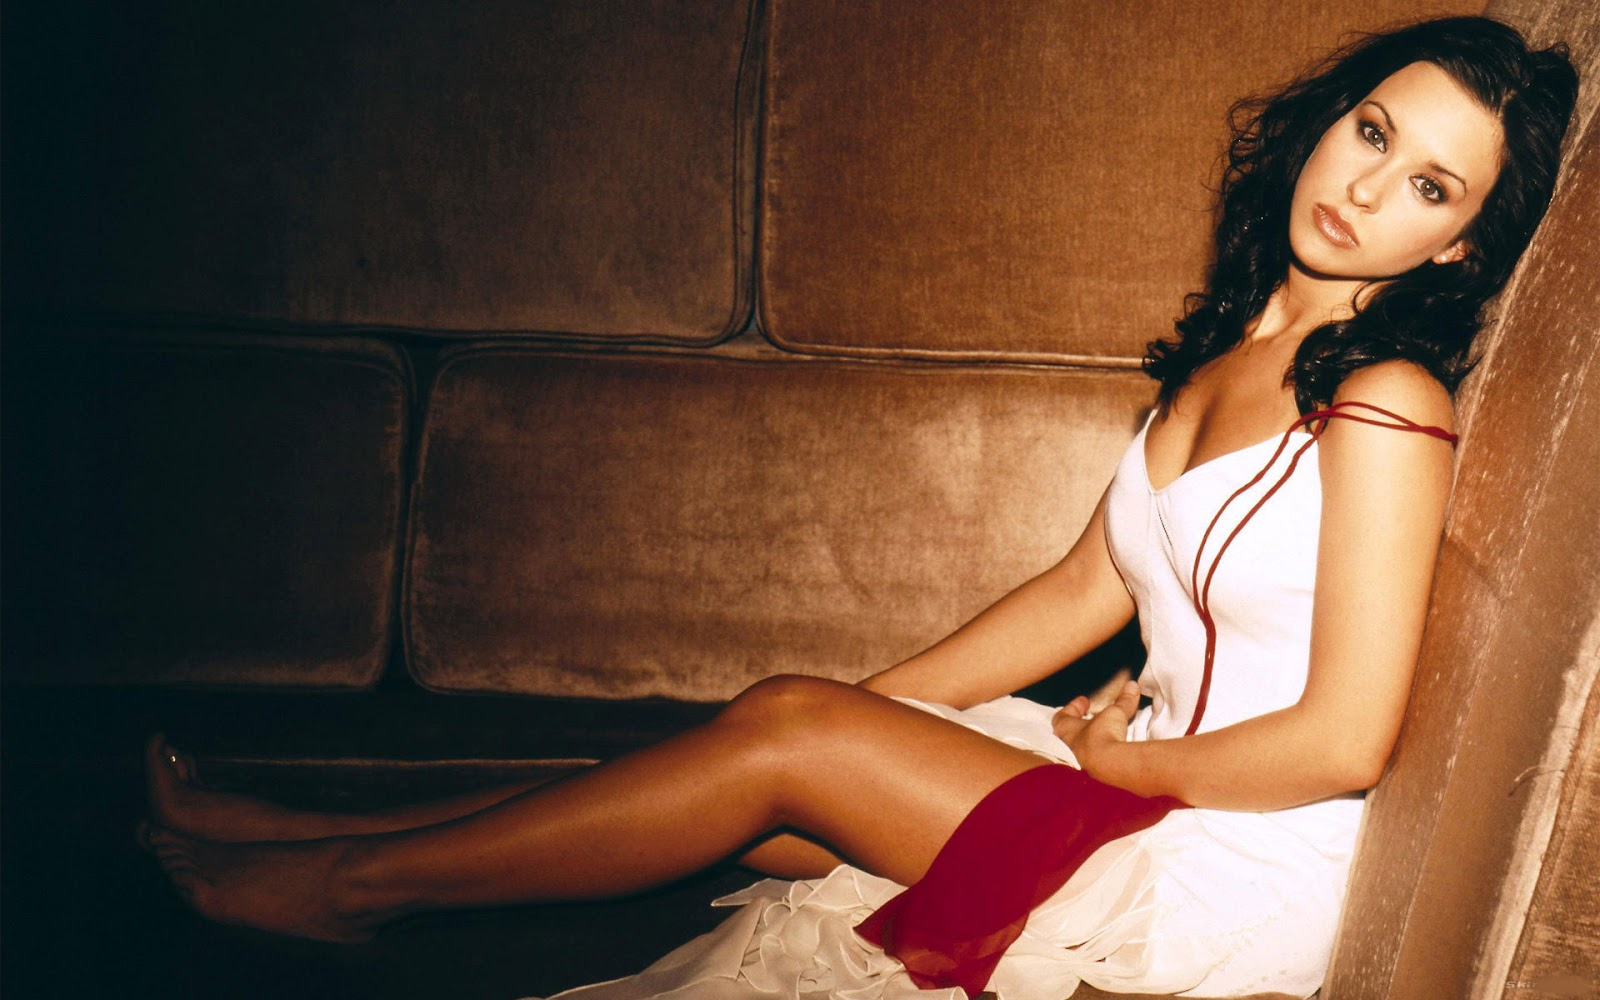 Hot Bio Celebrity Pictures: Lacey Chabert Hollywood ...Lacey Chabert Hot Wallpaper